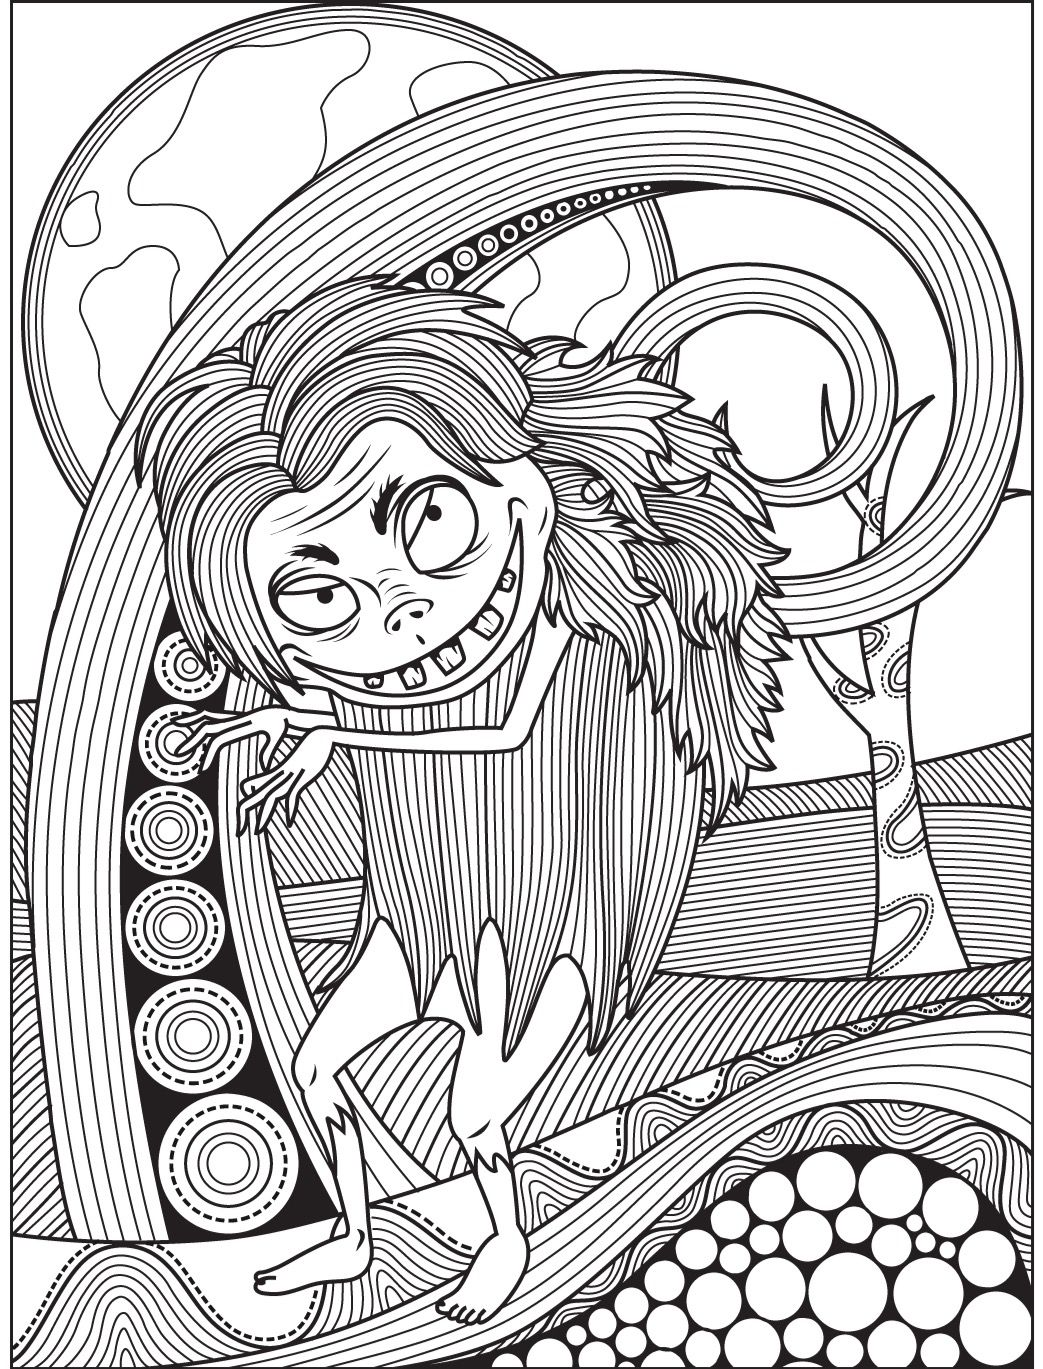 Halloween coloring page | Colorish: free coloring app for adults by ...